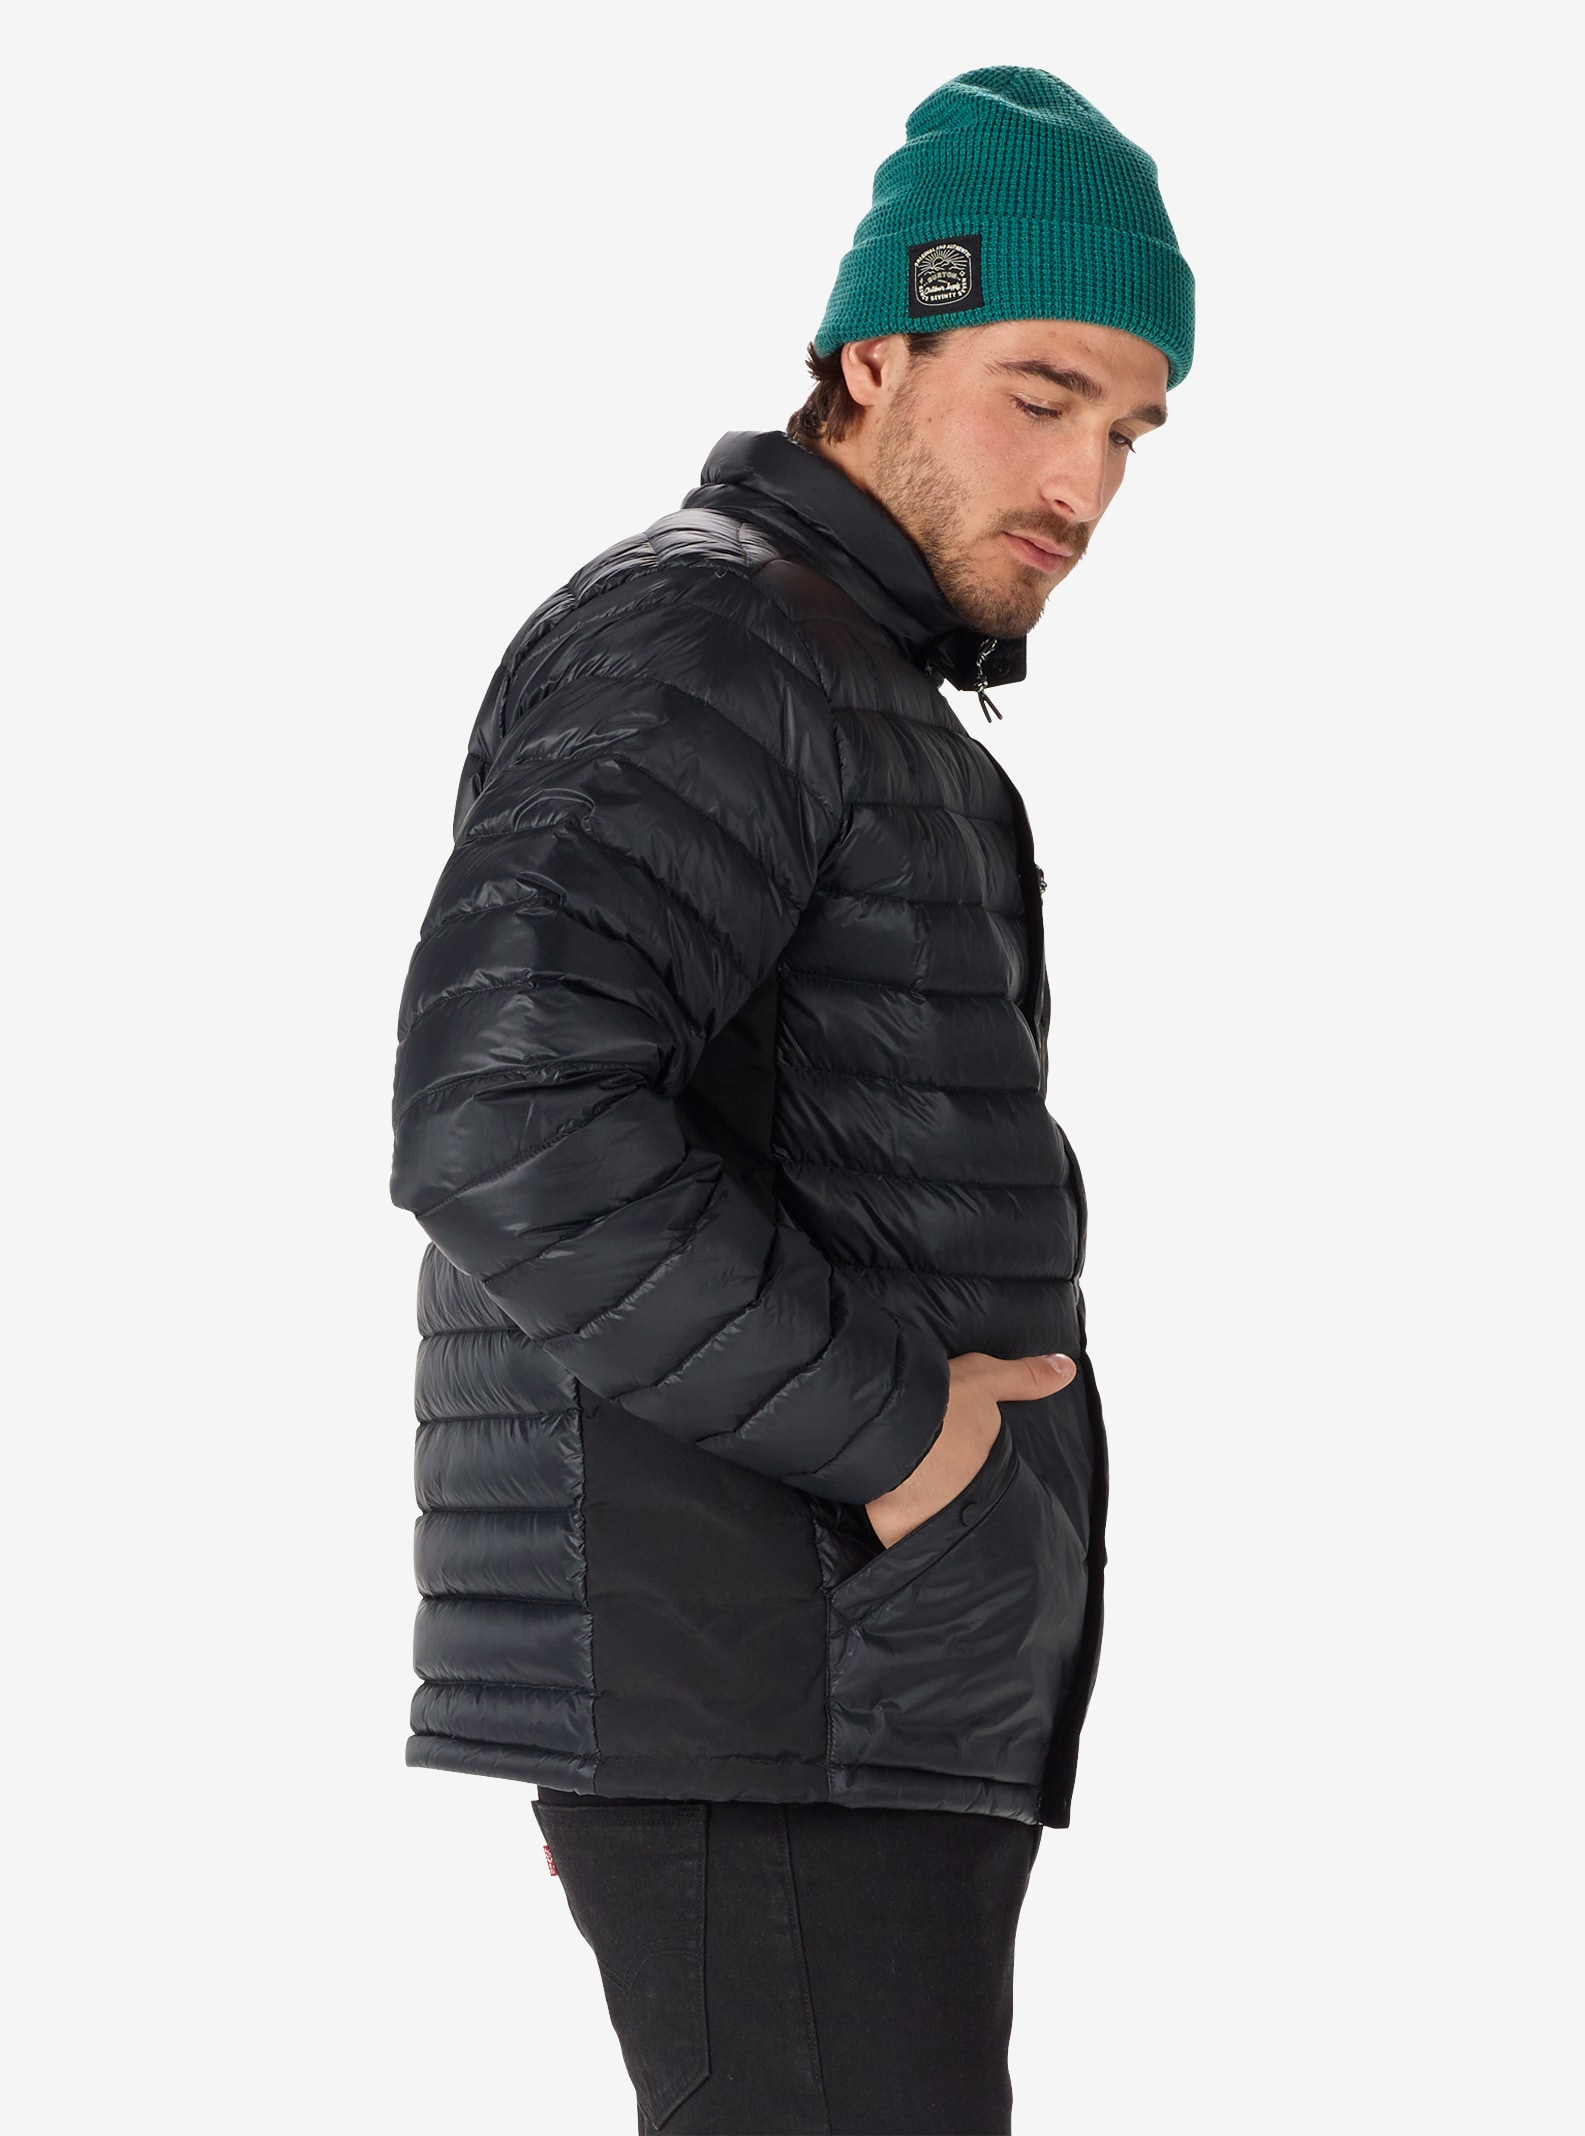 Men's Burton Evergreen Down Insulator shown in True Black